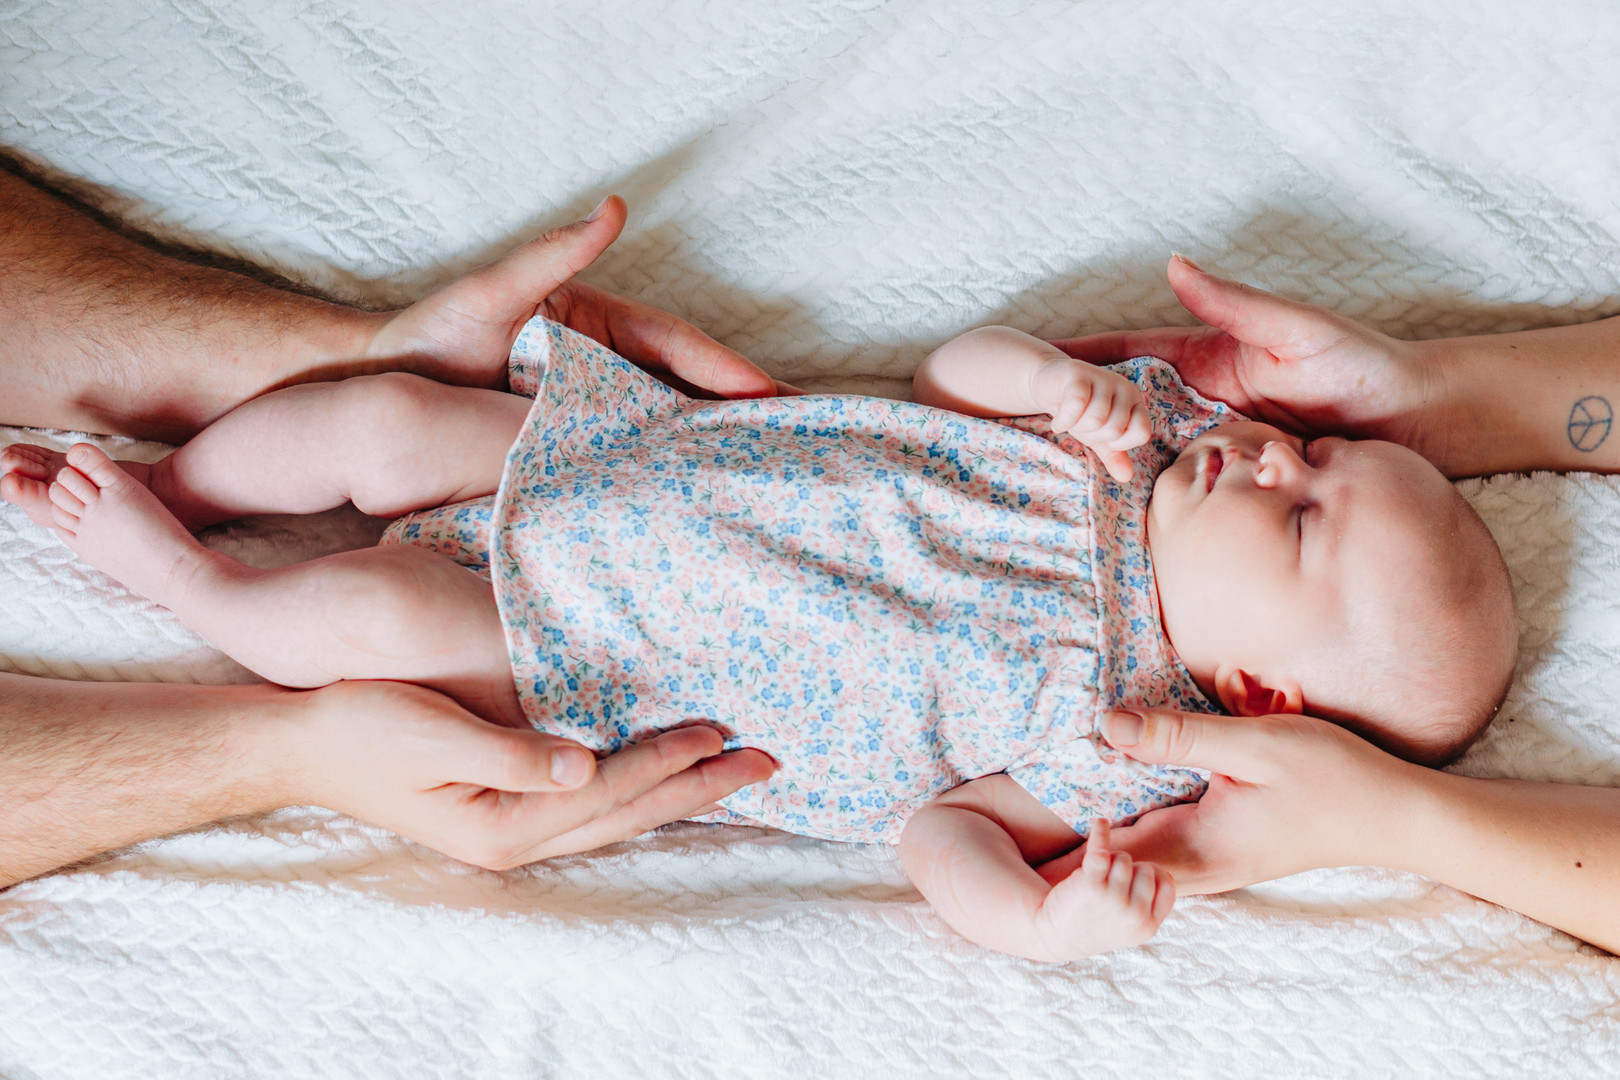 Sleeping baby cradled by mum and dad's hands. Newborn lifestyle photoshoot pose ideas.